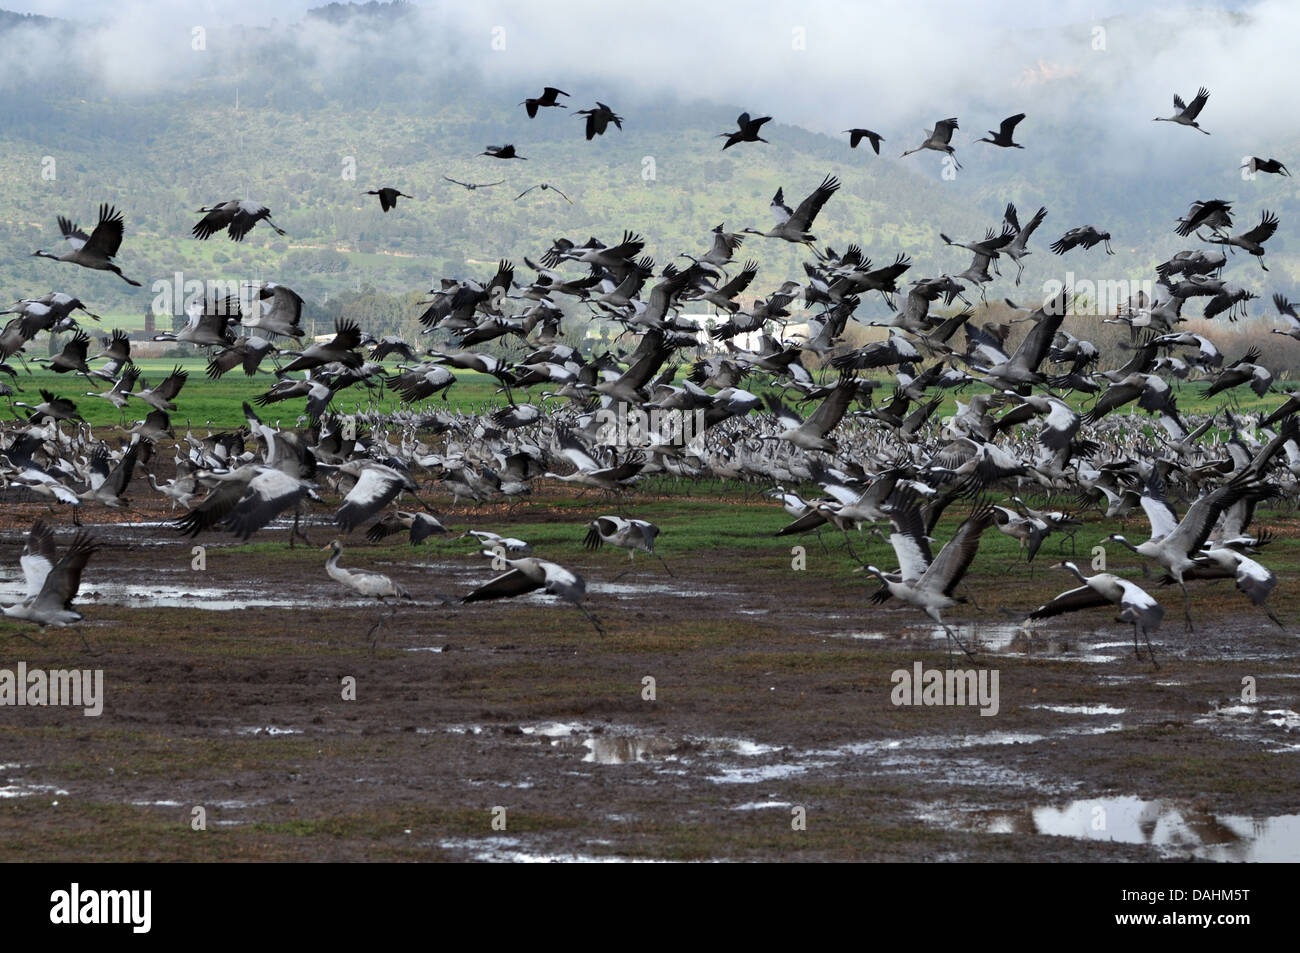 a large flock of Common crane (Grus grus) Silhouetted at dawn. Large migratory crane species that lives in wet meadows and marsh Stock Photo